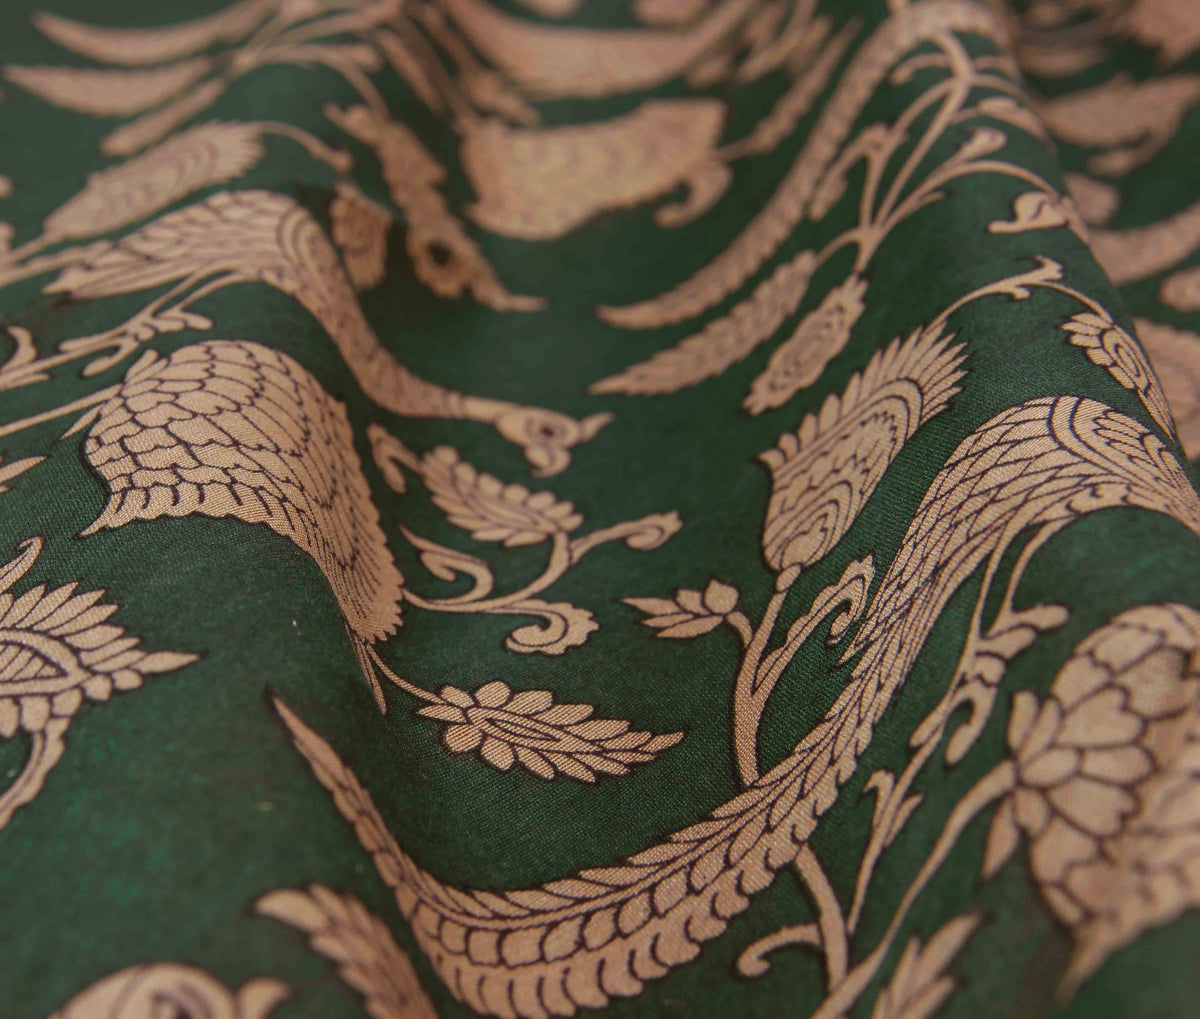 Green Silk Cotton Saree with Peacock prints (3) closeup